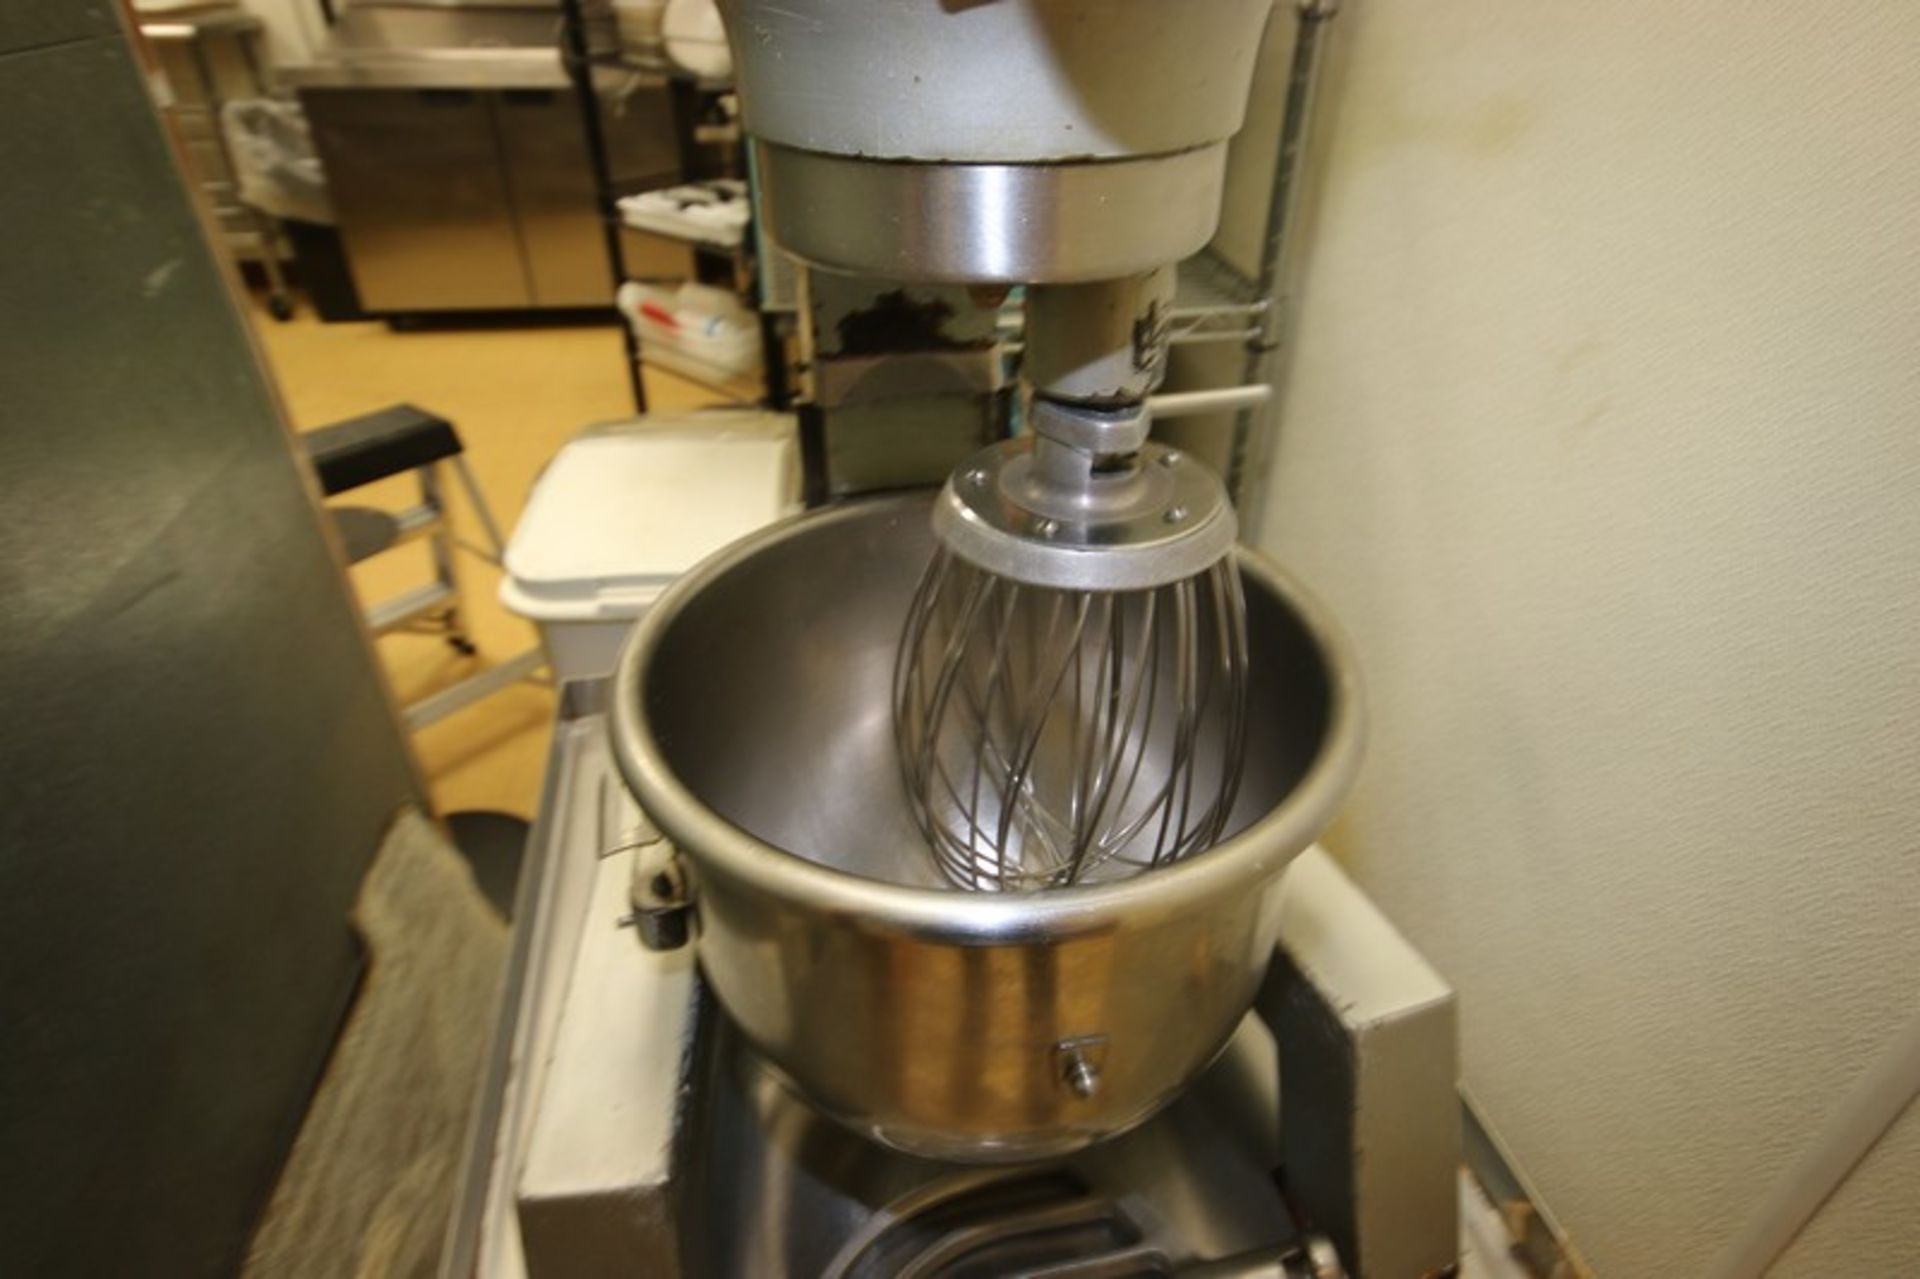 Hobart Mixer, M/N A300F, S/N 11-306-736, 115 Volts, 1 Phase, with S/S Mixing Bowl, S/S Whip & Flat - Image 5 of 7